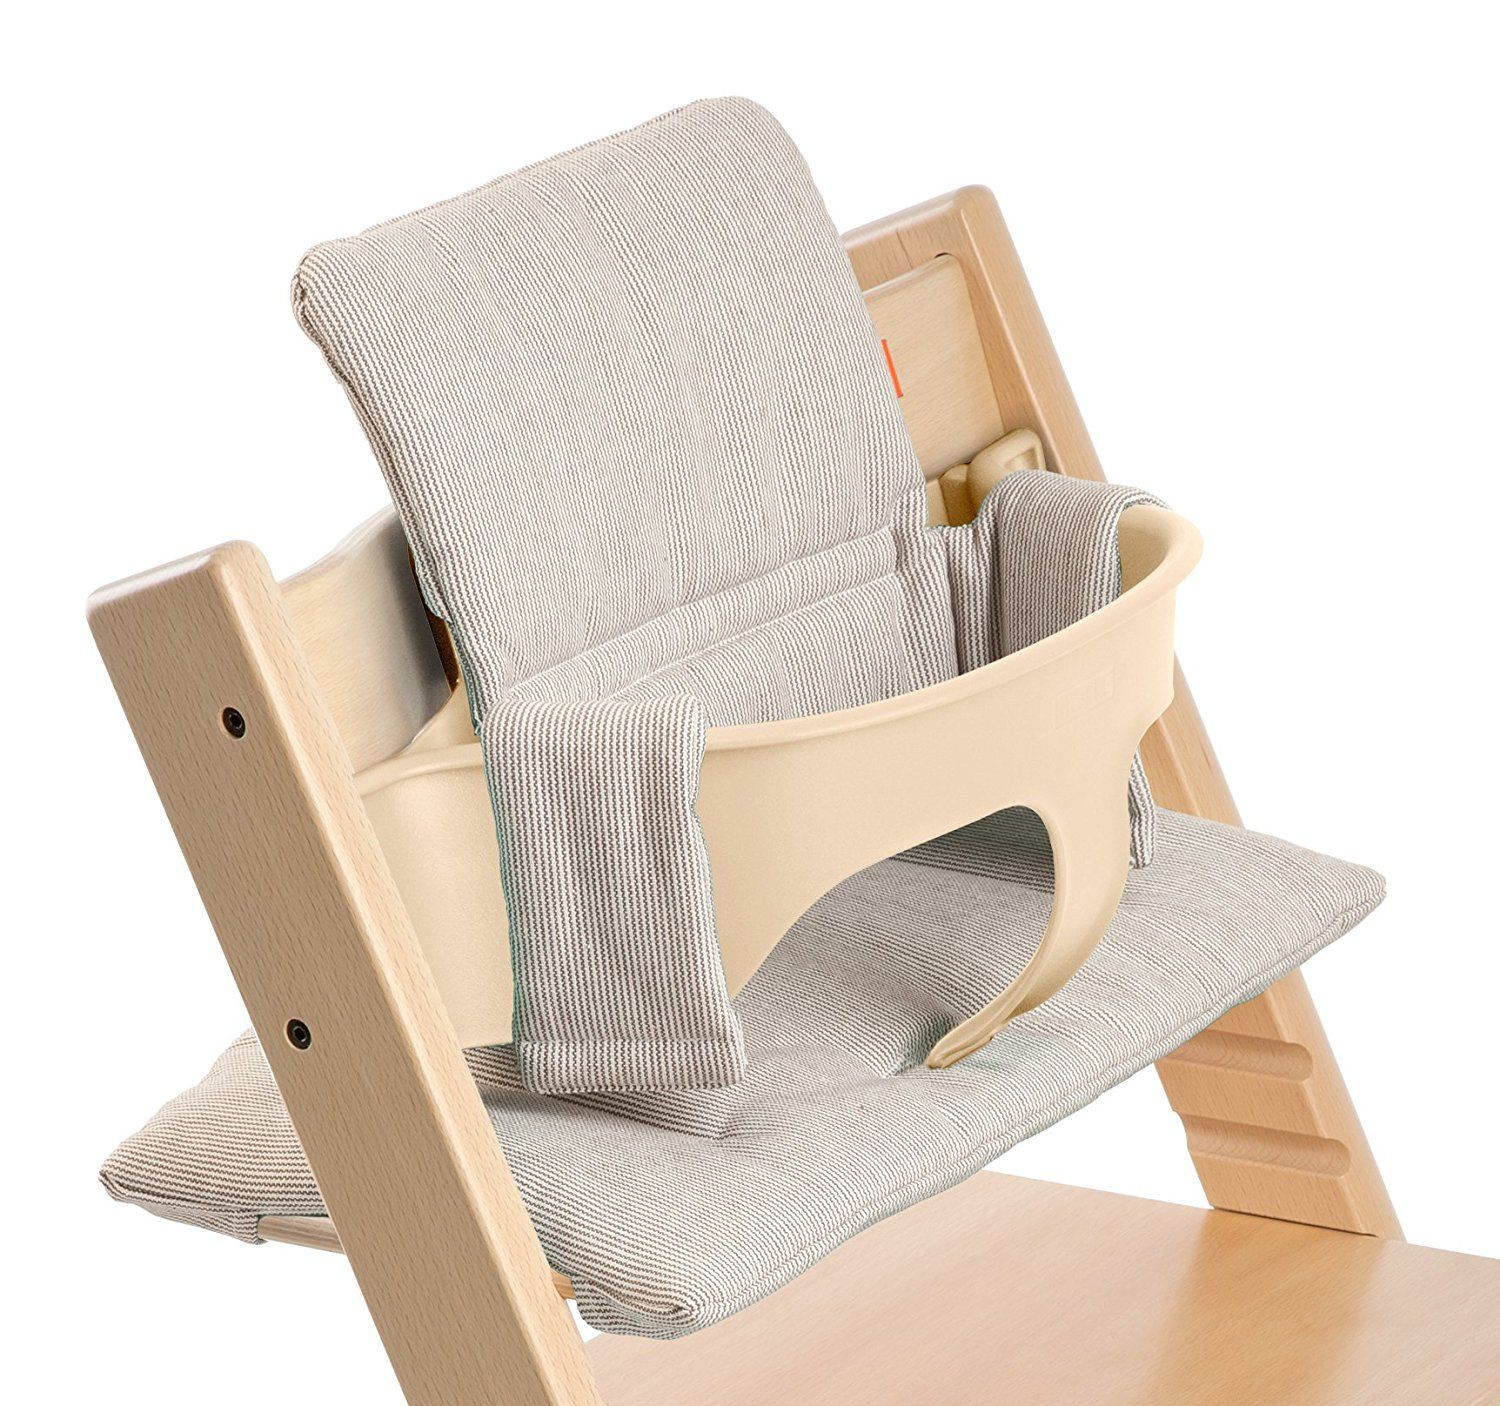 Harnais Chaise Tripp Trapp Stokke Coussin Pour Chaise Tripp Trapp Reflet Gris Couture